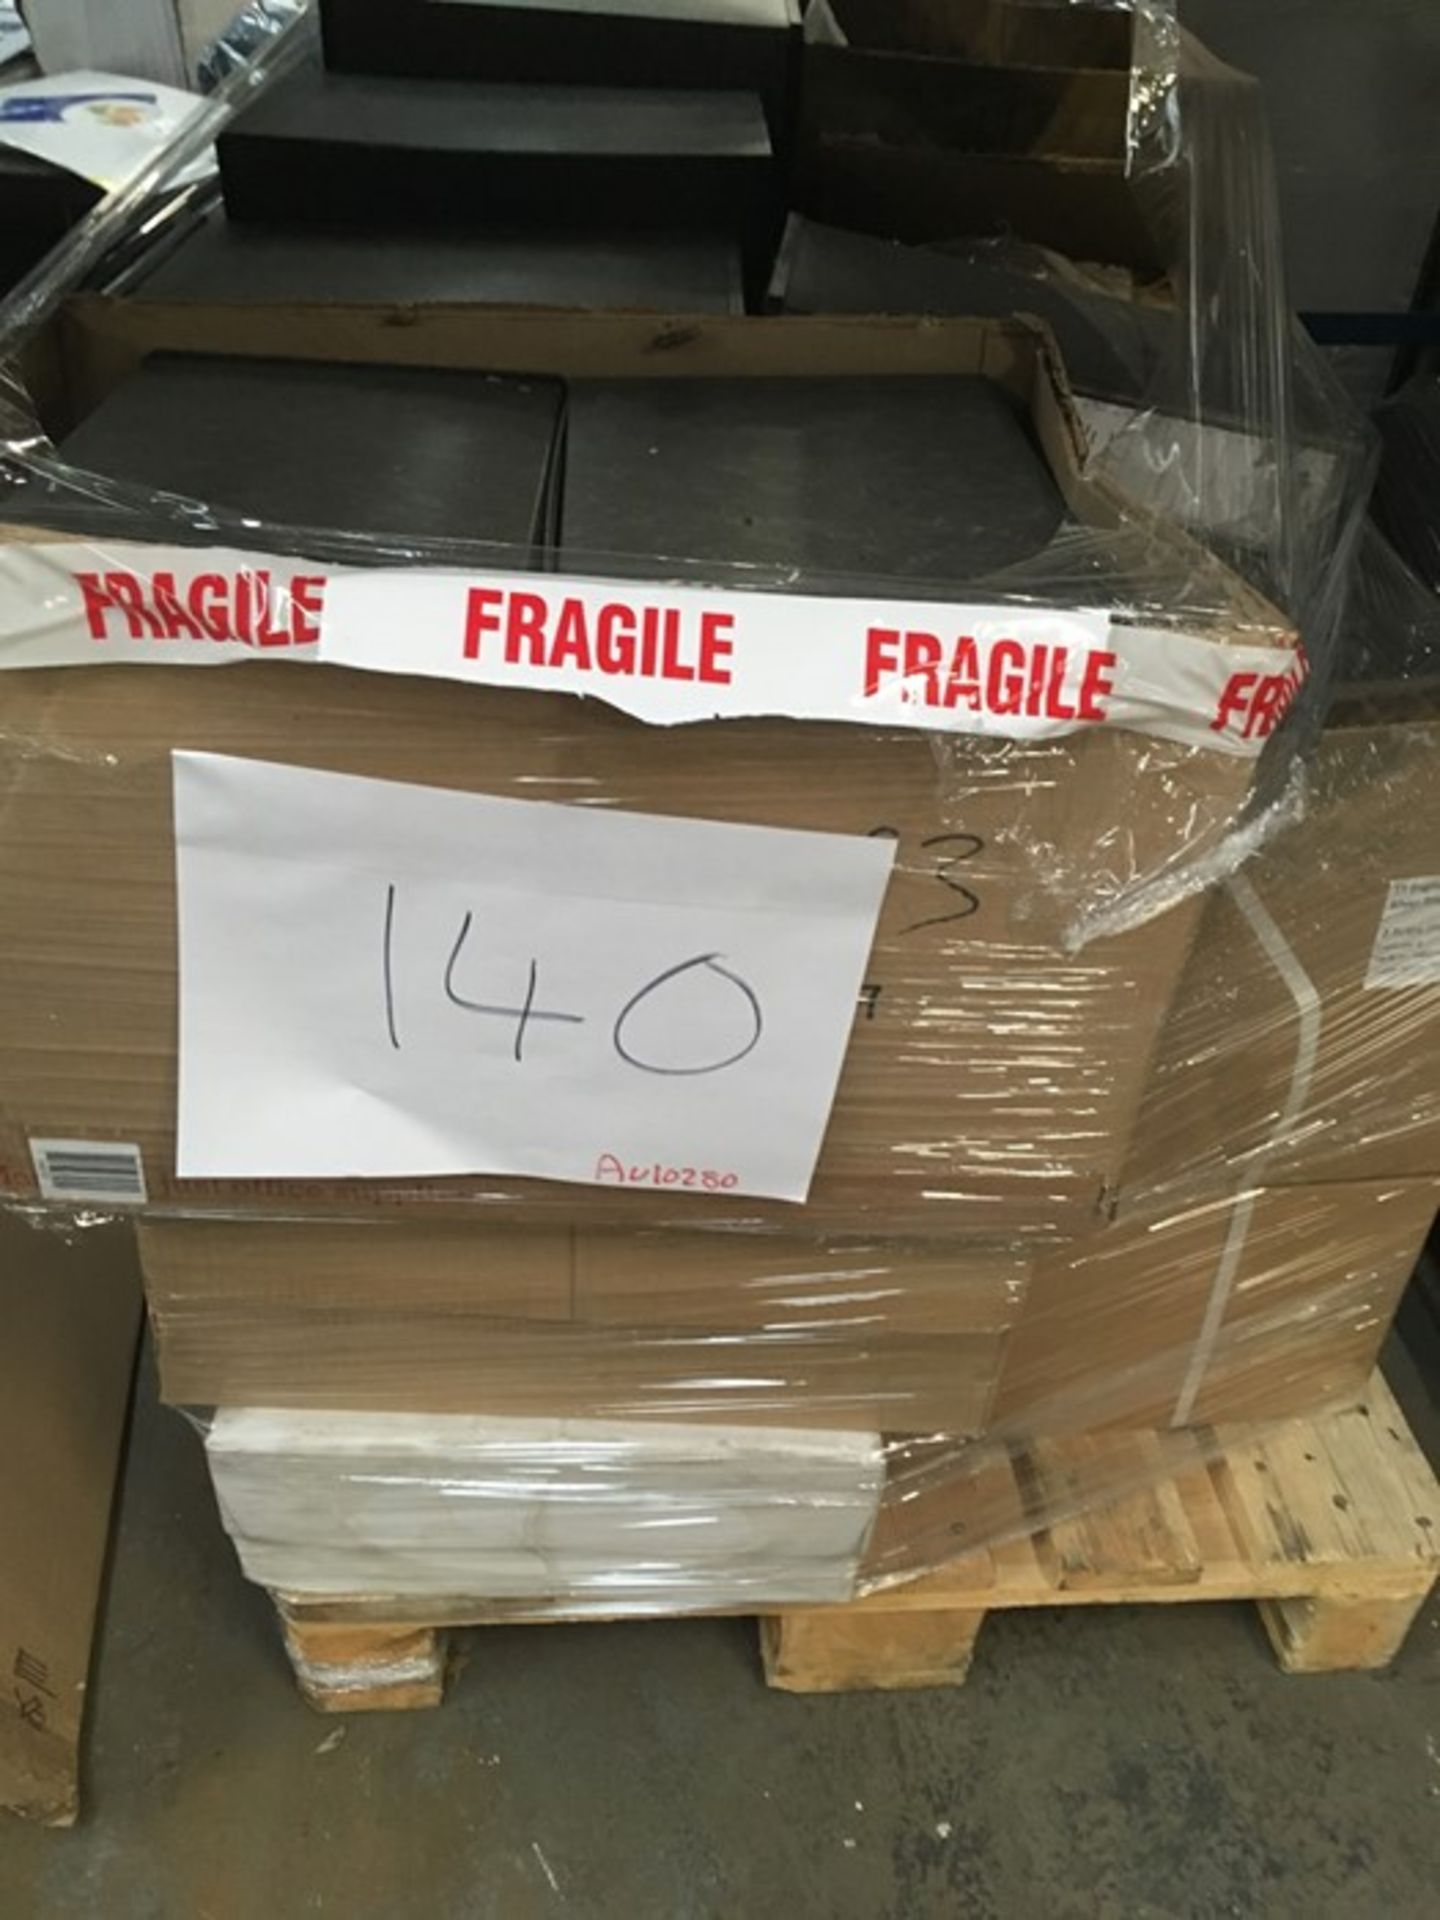 Lot 63 - 1 LOT TO CONTAIN ASSORTED STATIONARY EQUIPMENT / INCLUDES CUP DISPENSERS, FOLDERS, INVOICE PAPER,